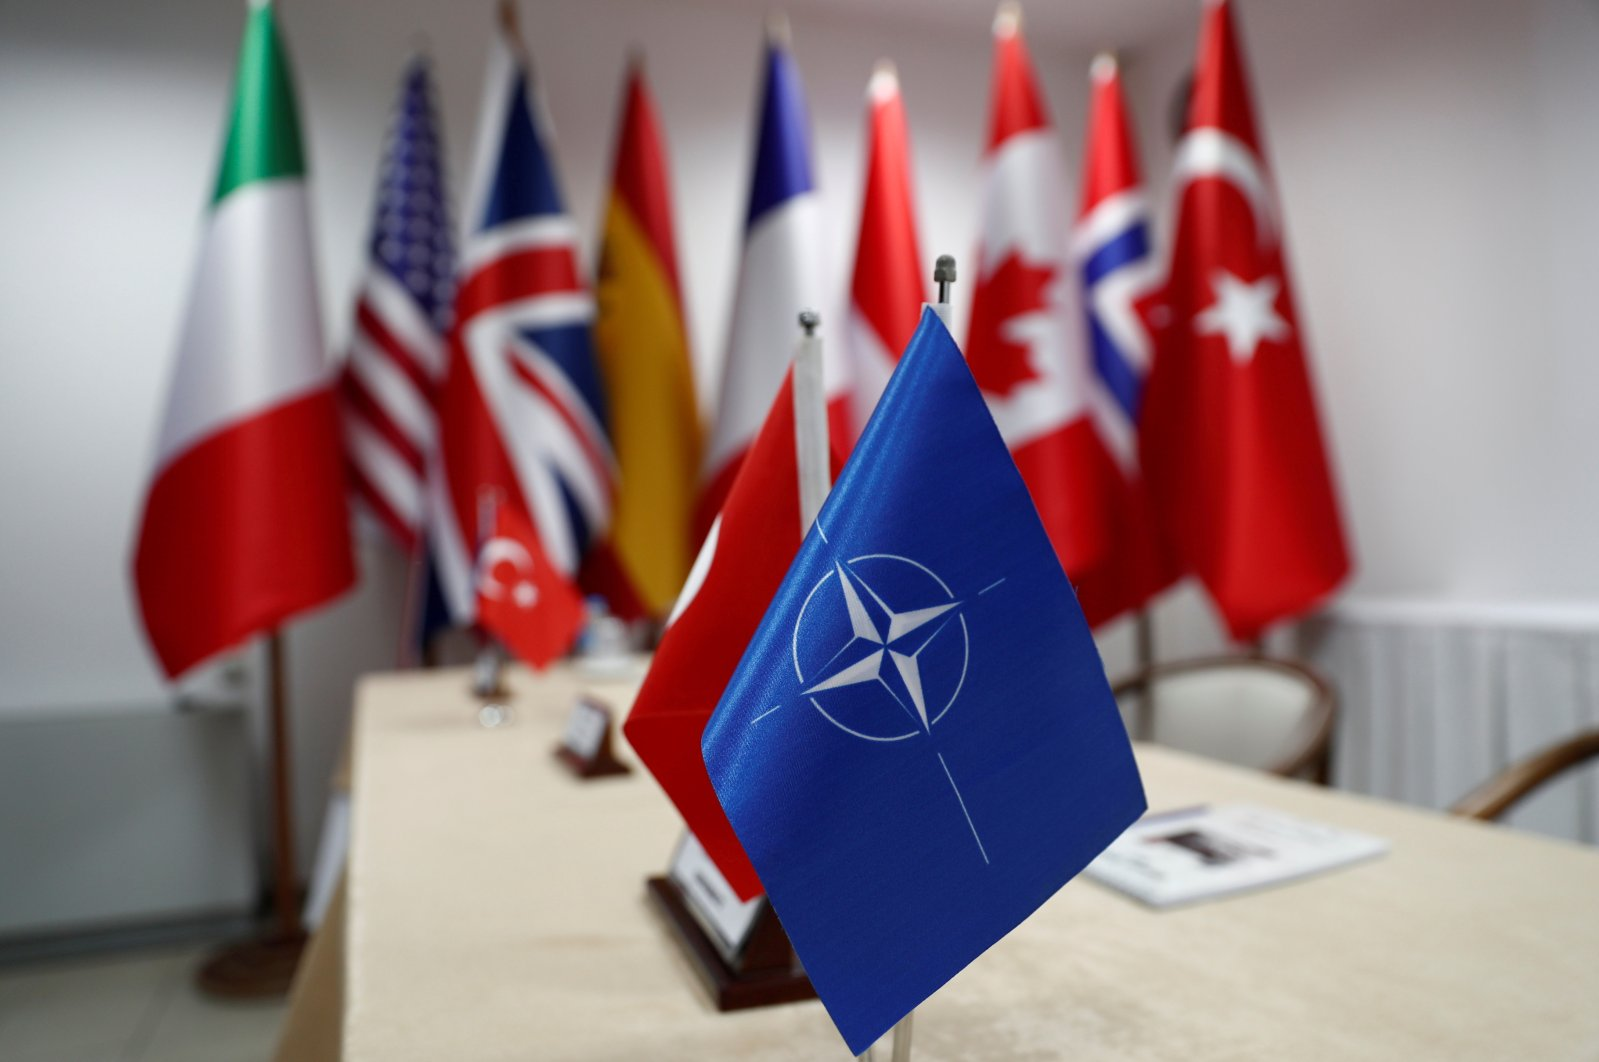 NATO's flag and the flags of participating countries are pictured during the Dynamic Monarch-17, a NATO-sponsored submarine escape and rescue exercise, at the Turkish Naval base of Aksaz, Turkey, Sept. 20, 2017. (Reuters File Photo)